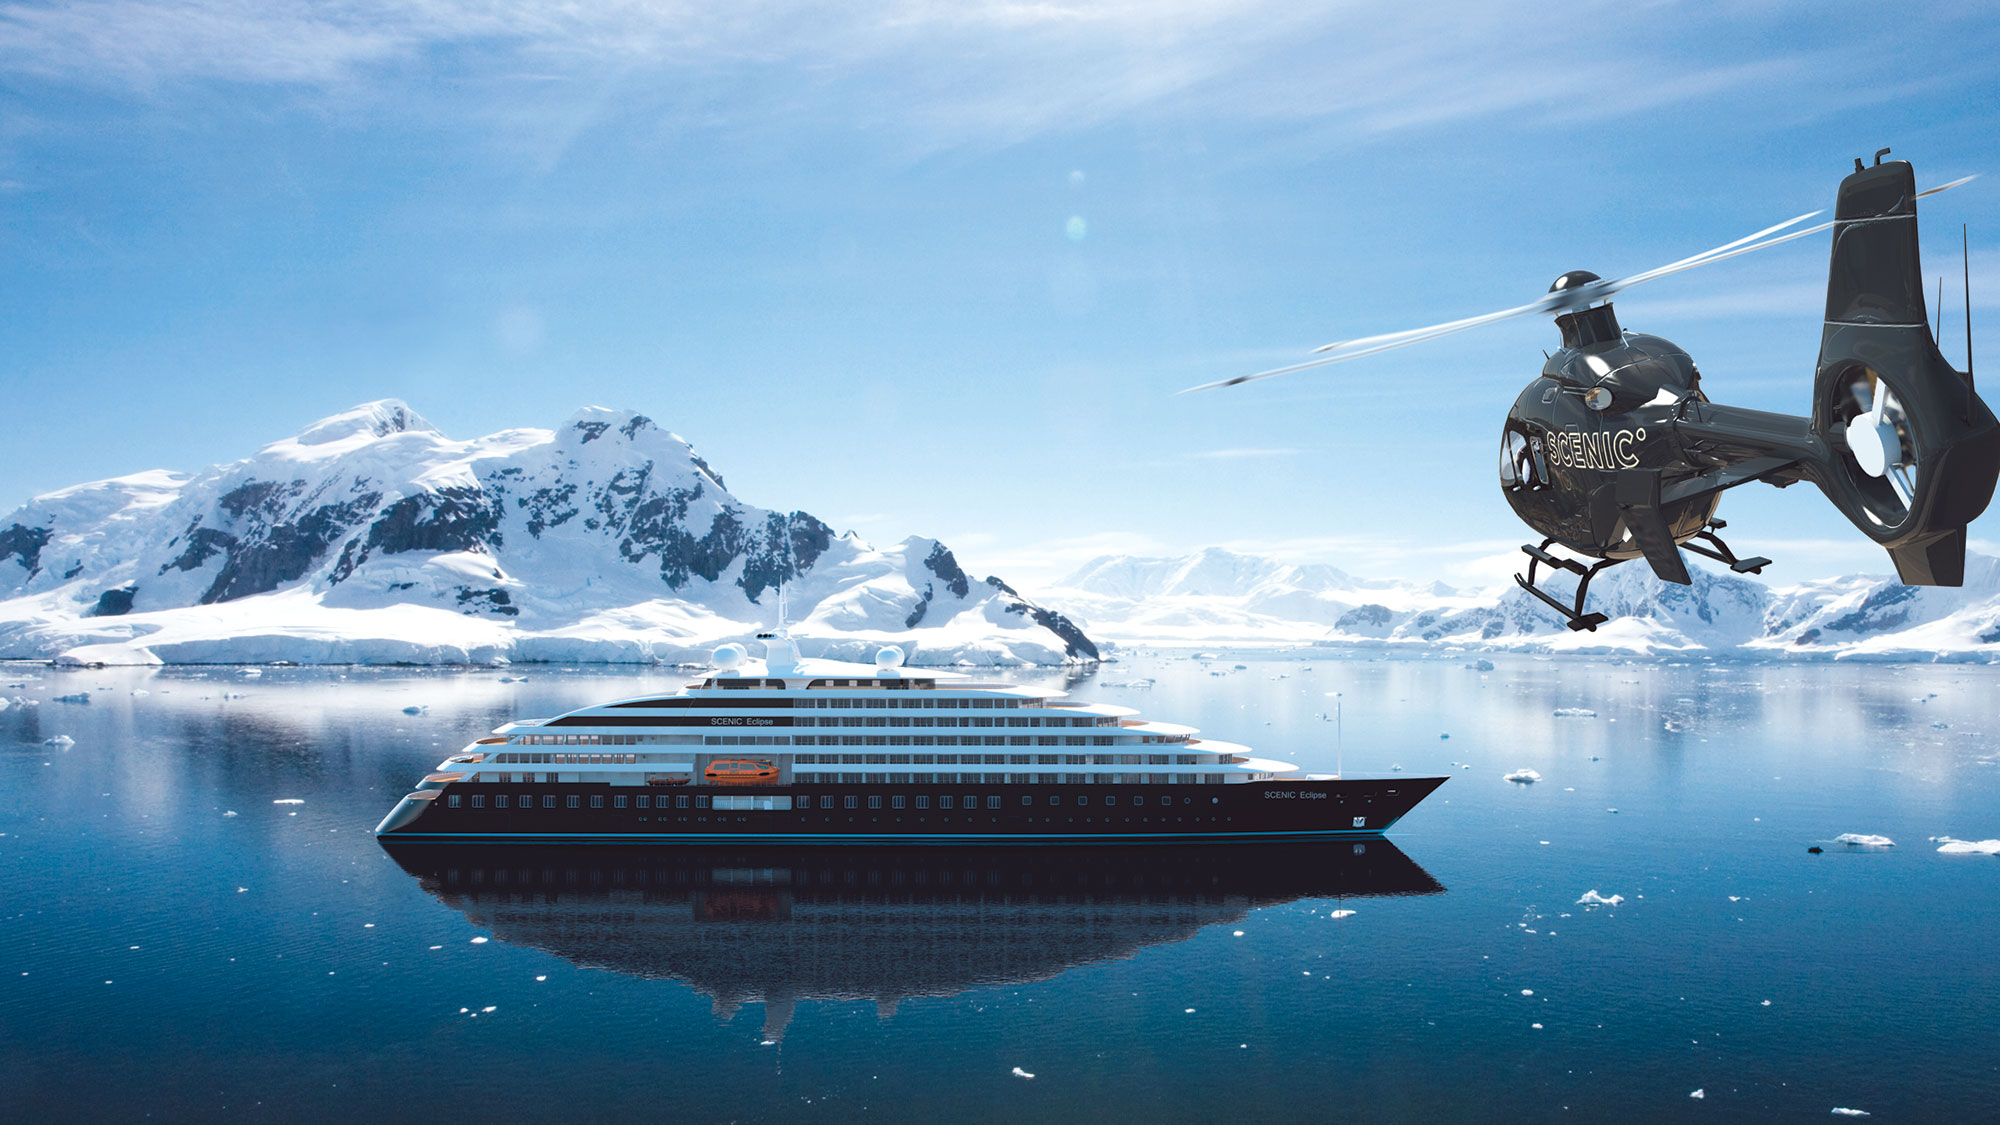 Luxury expedition cruises heat up for cold places, cool gadgets